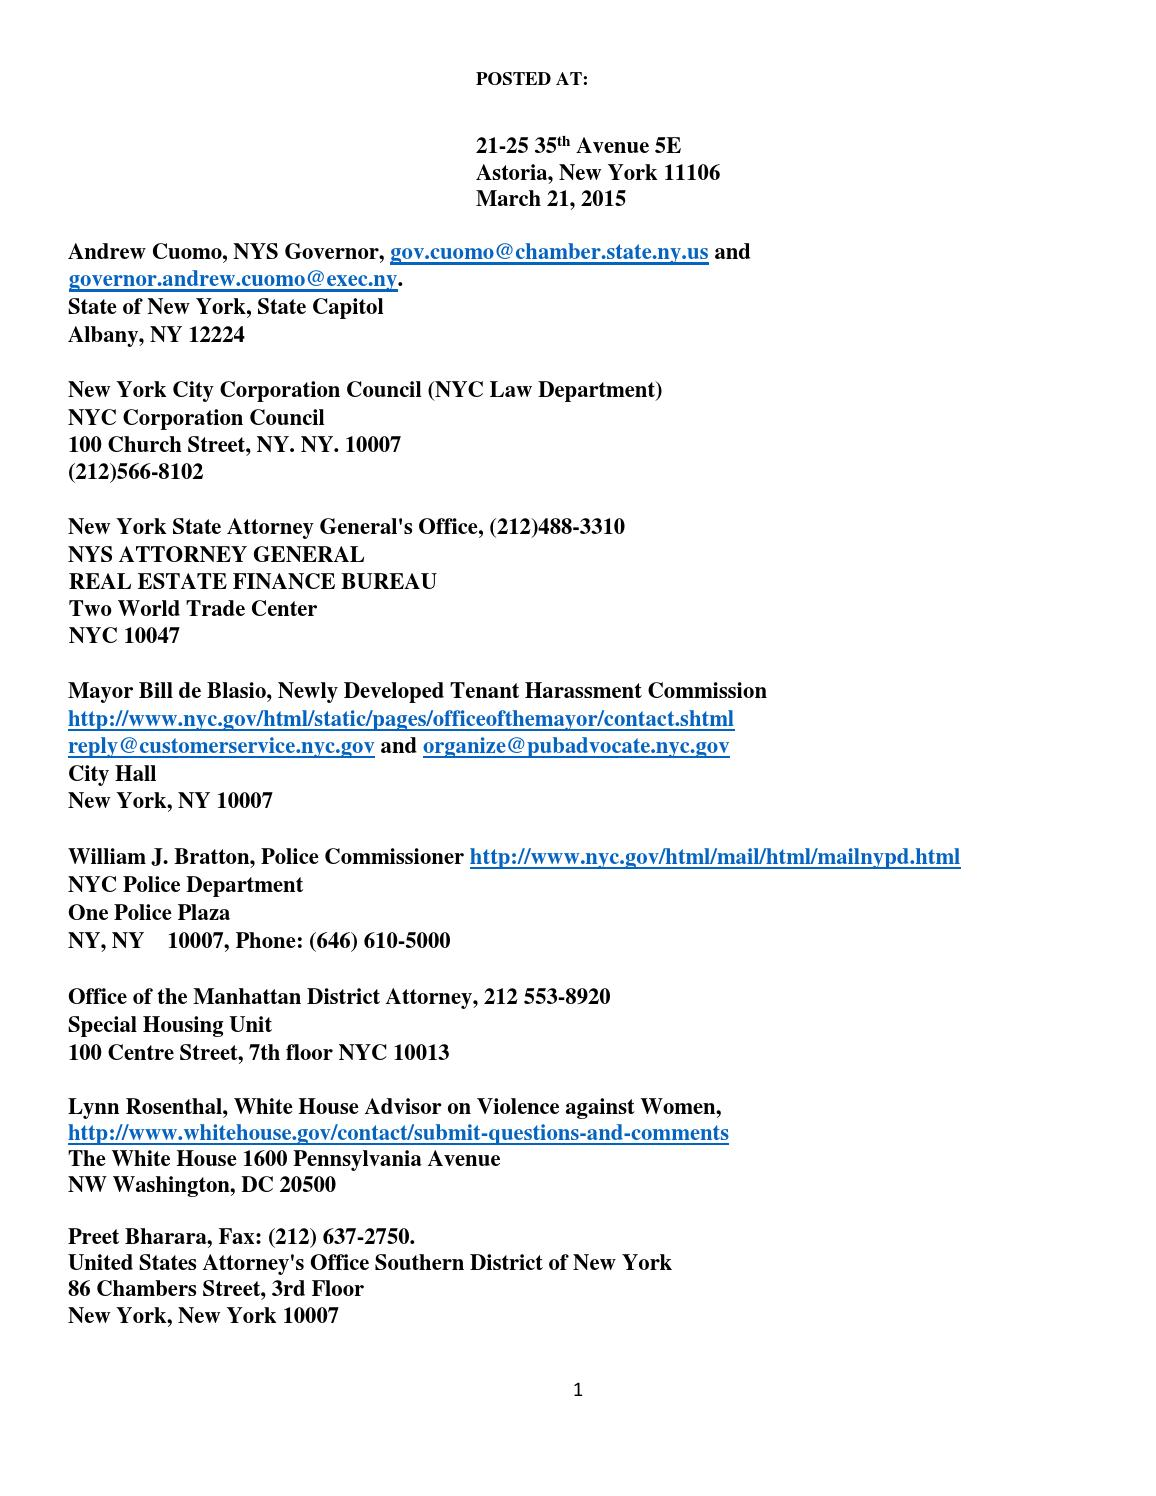 Nycha Retaliation Elder Abuse And Harassment March 2015